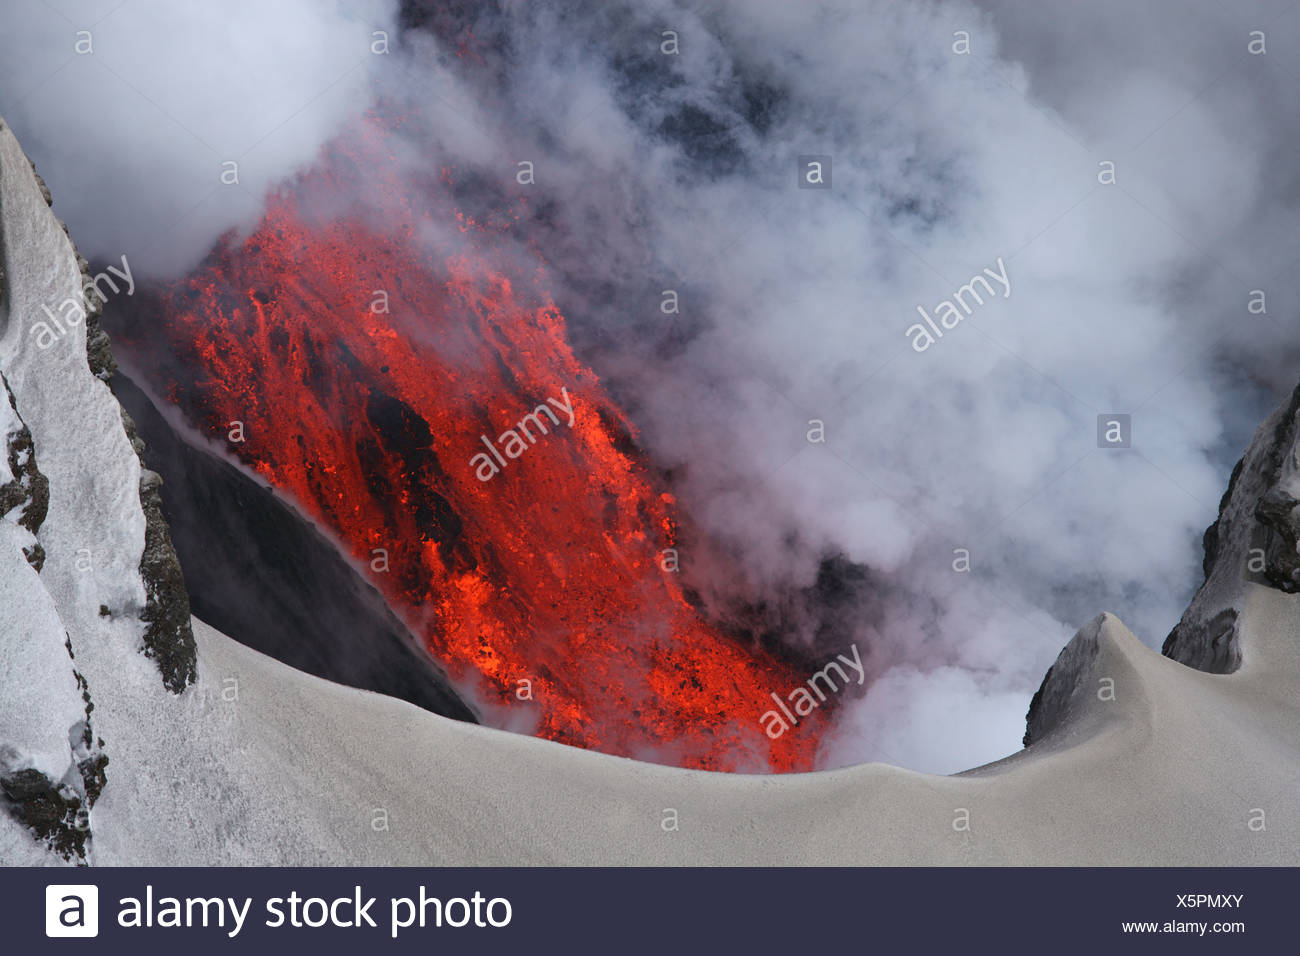 Molten lava flowing from Eyjafjallajokull, Fimmvorduhals, Iceland - Stock Image